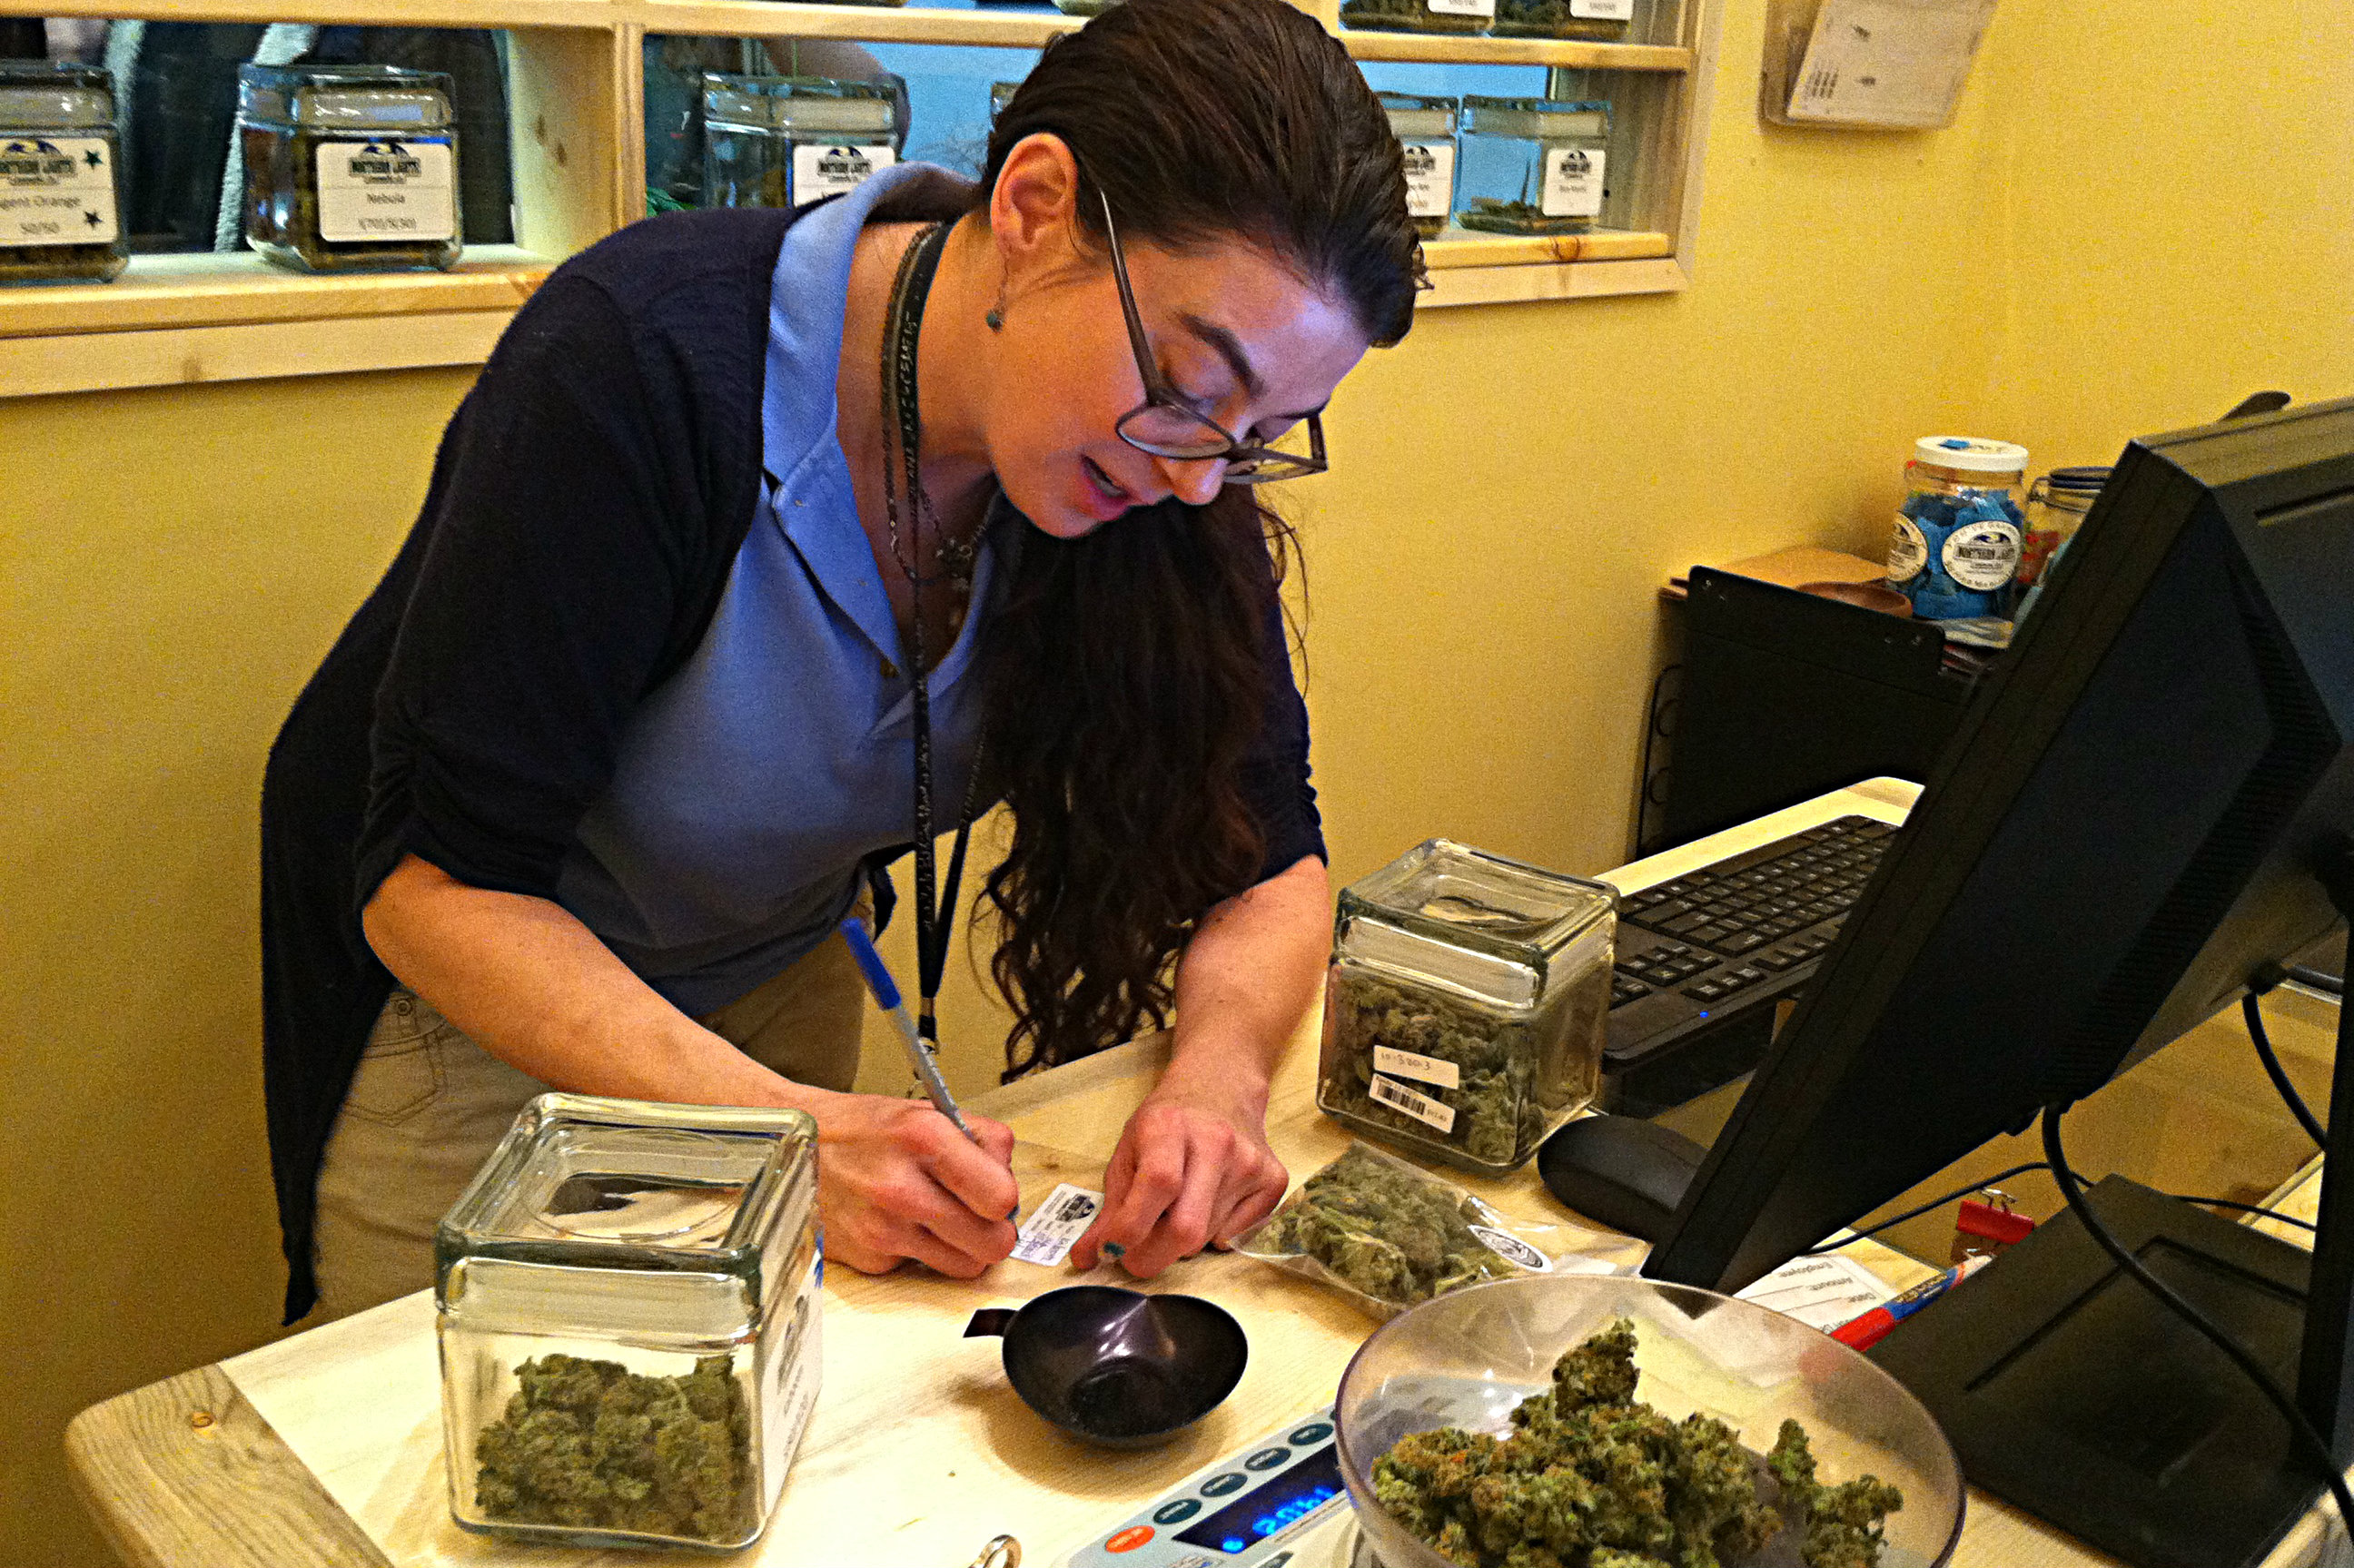 <p>A bud tender at Northern Lights packages product for a customer. In the jars on the shelves behind her, the buds for sale to recreational users are kept separate from marijuana intended for medical smokers, as is required by state law. </p>